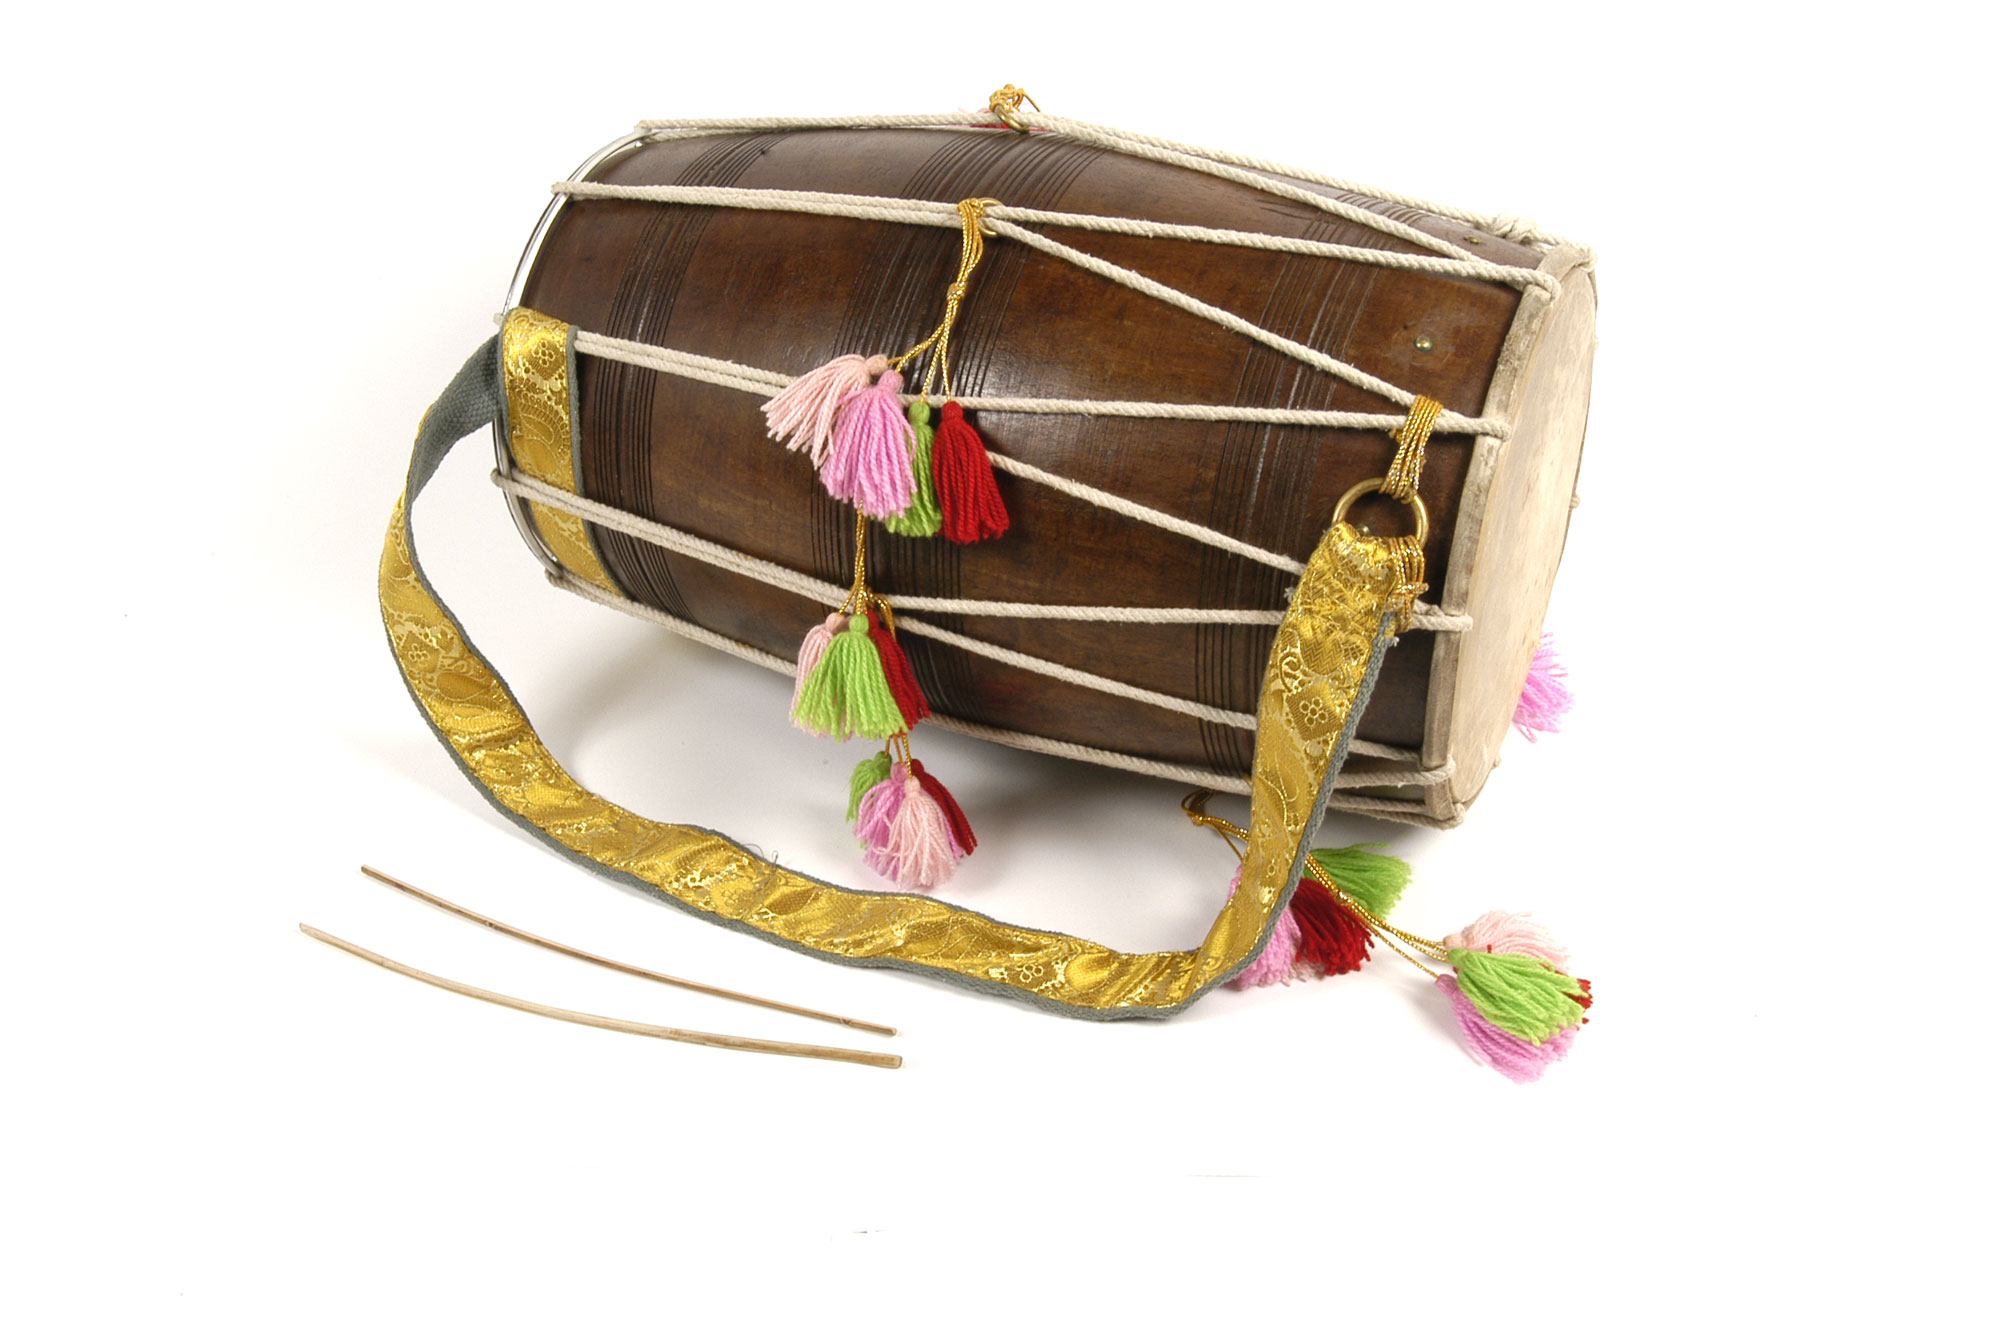 A round long drum, with a yellow strap so that it can be carried across the body and bit with two beaters without dropping it. There are pom poms on each side